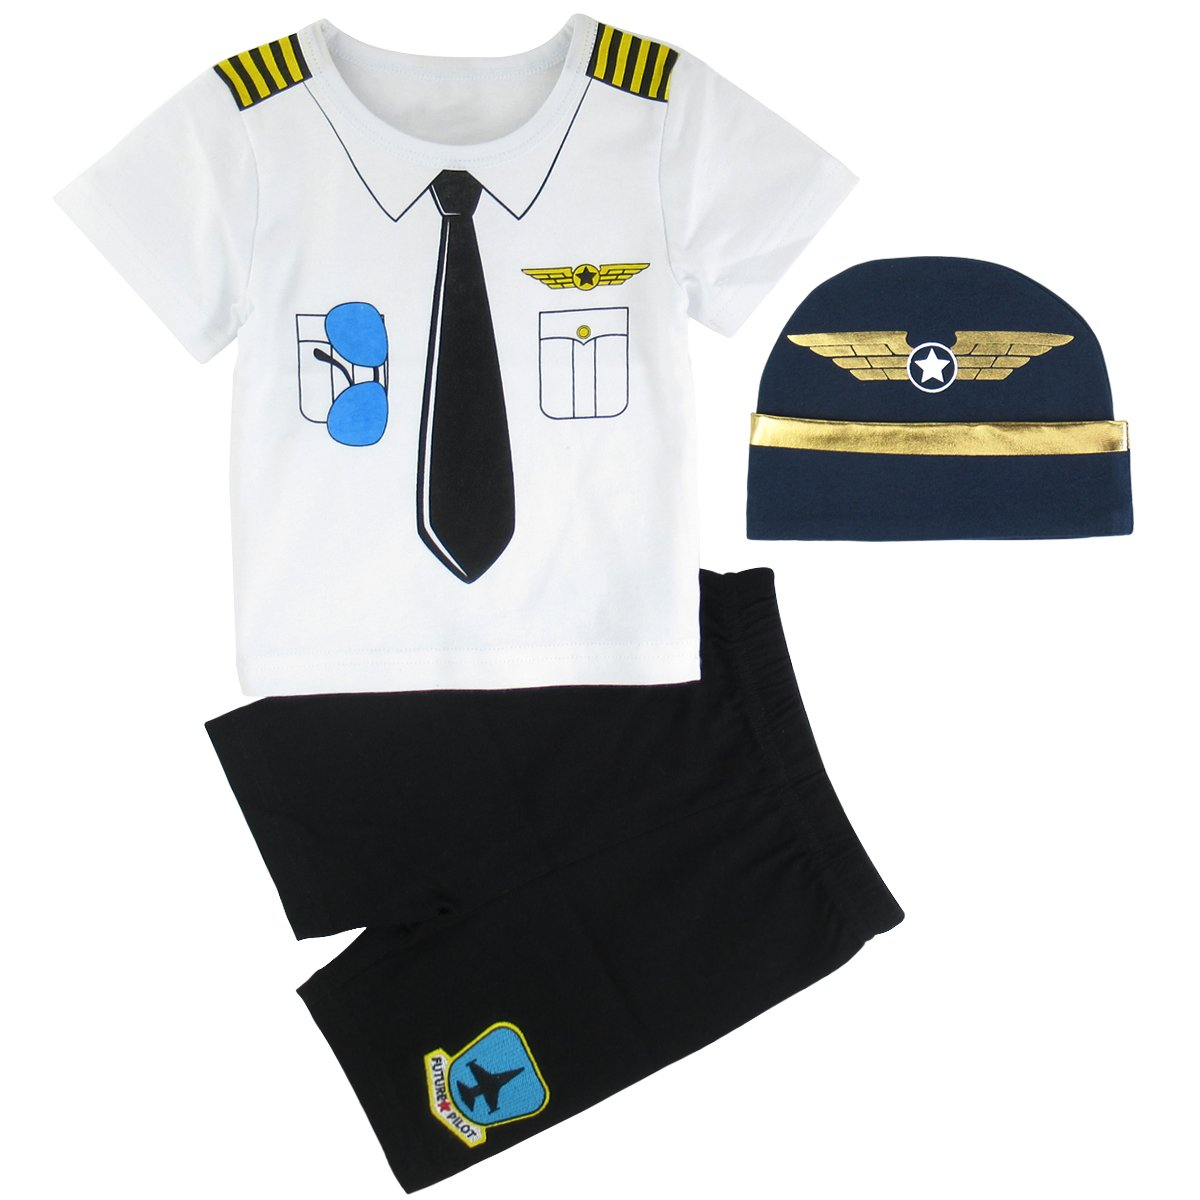 Mombebe Baby Boys' 3 Pieces Pilot Short Clothing Set Hat